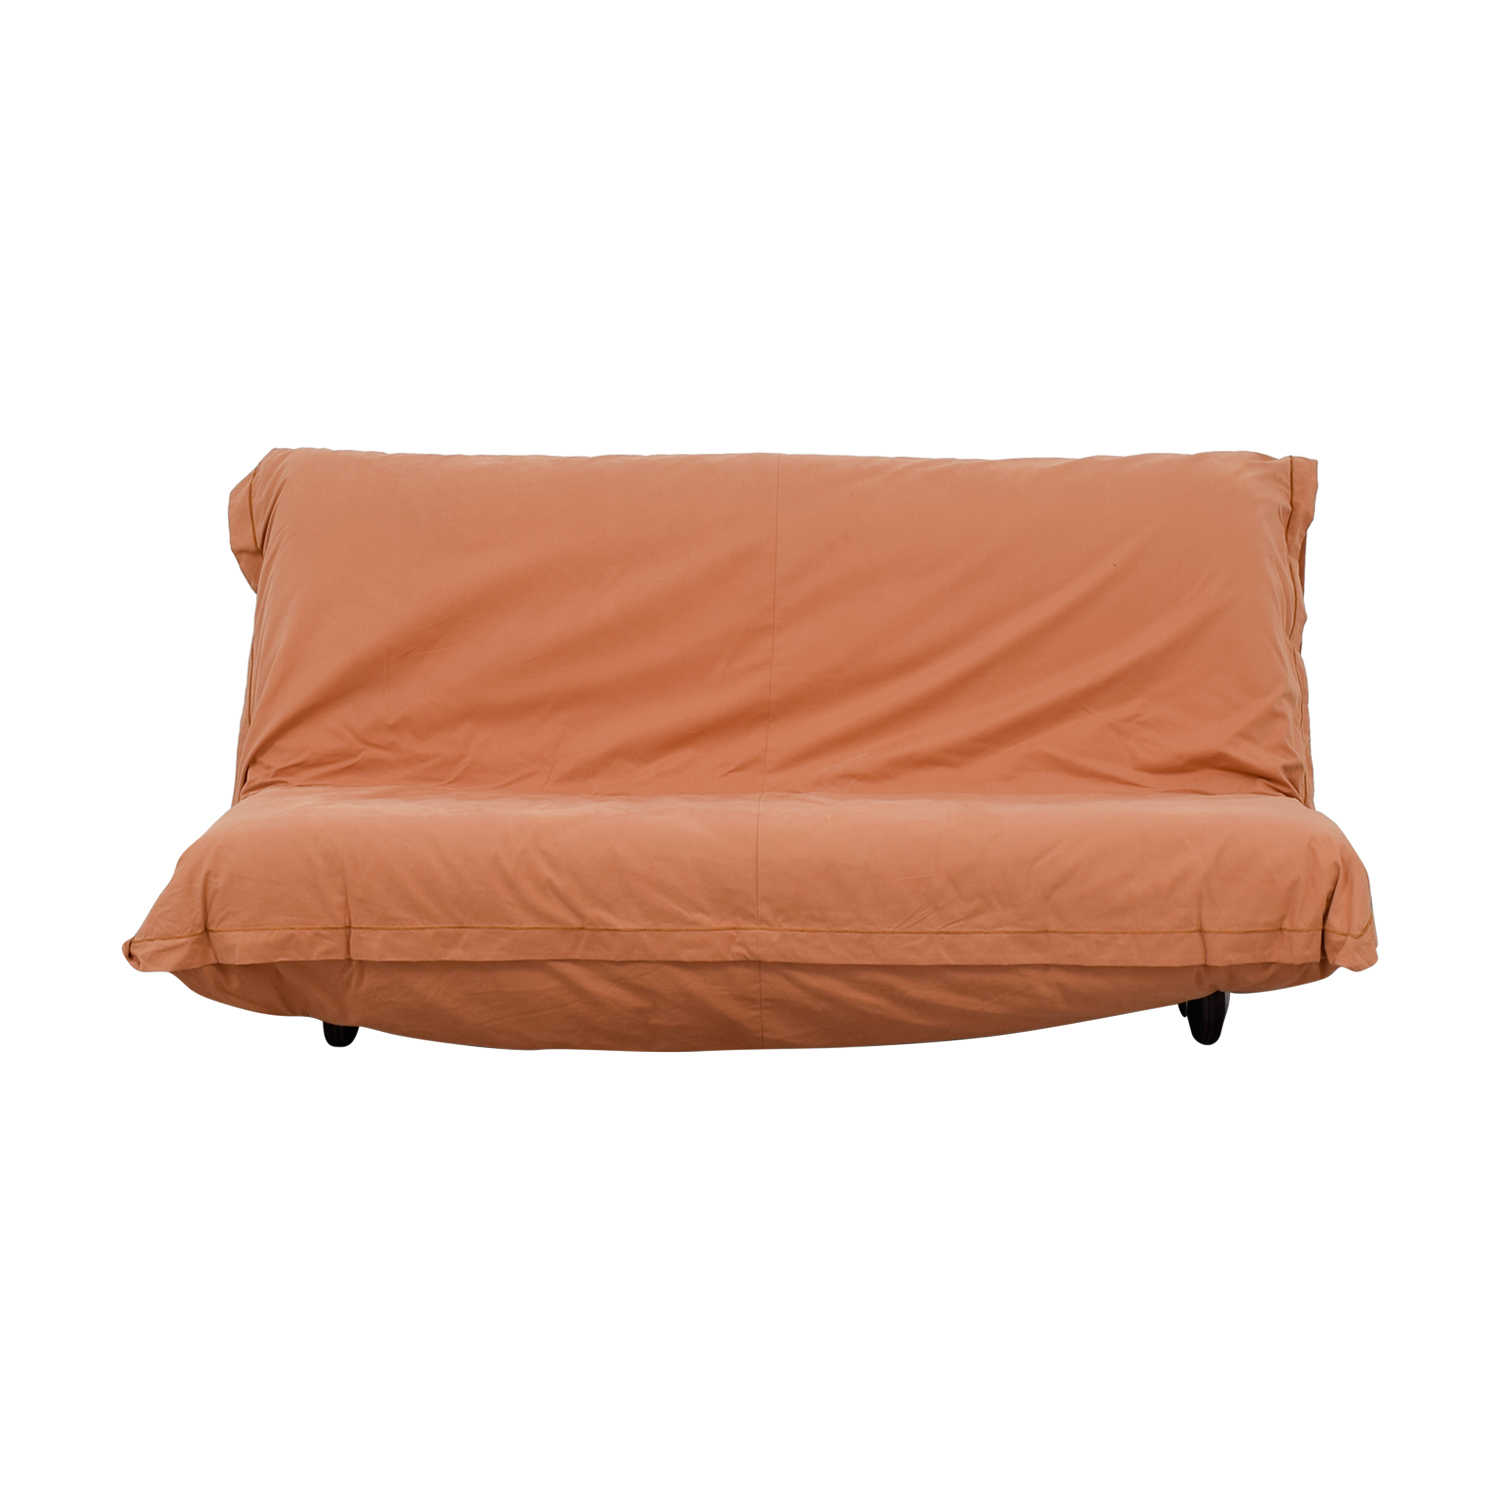 Ligne Roset Ligne Roset Calin Collection Queen Futon Bed black frame /orange cover